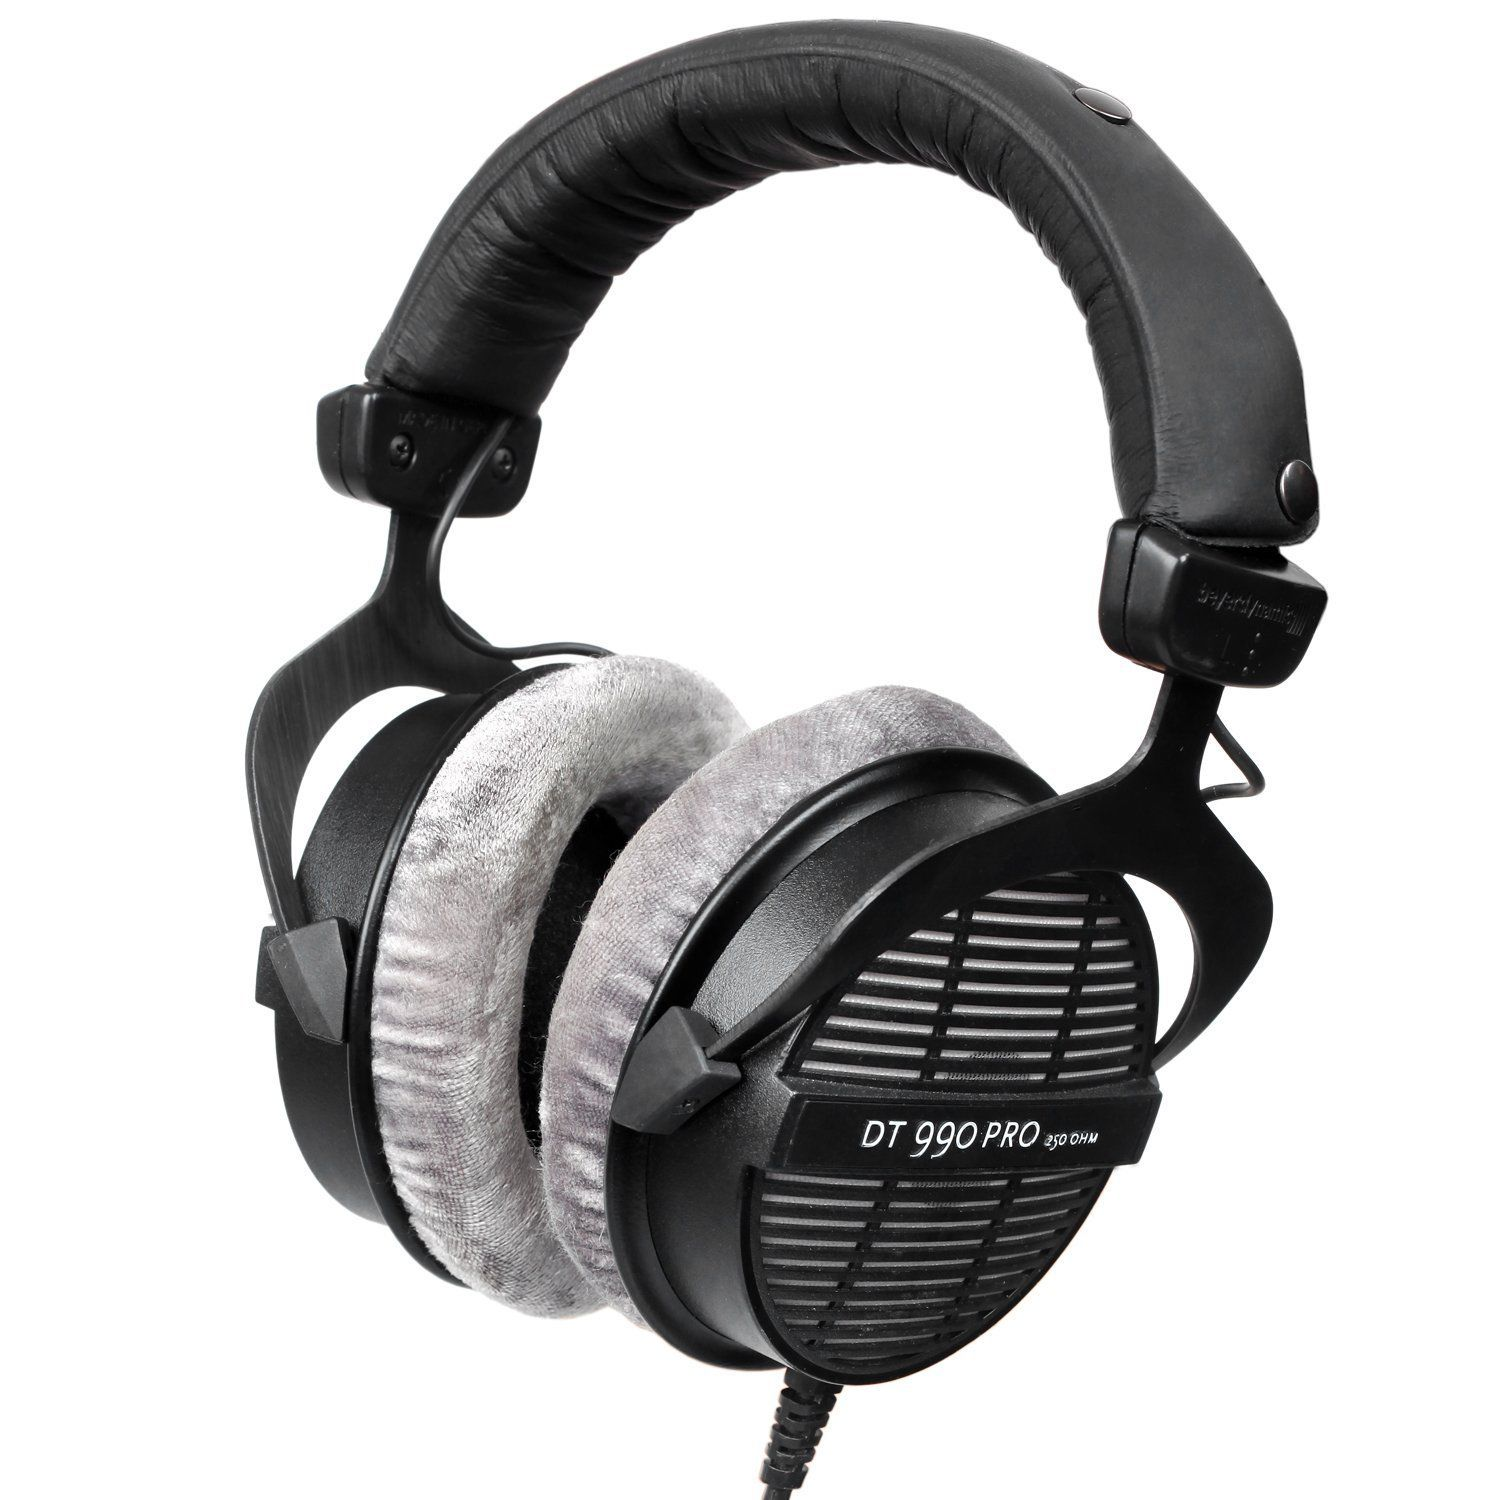 Beyerdynamic DT 990 Pro 250 Ohm Hi-Fi headphones, Professional Studio Headsets, Open Back Headband headpones Made in Germany image